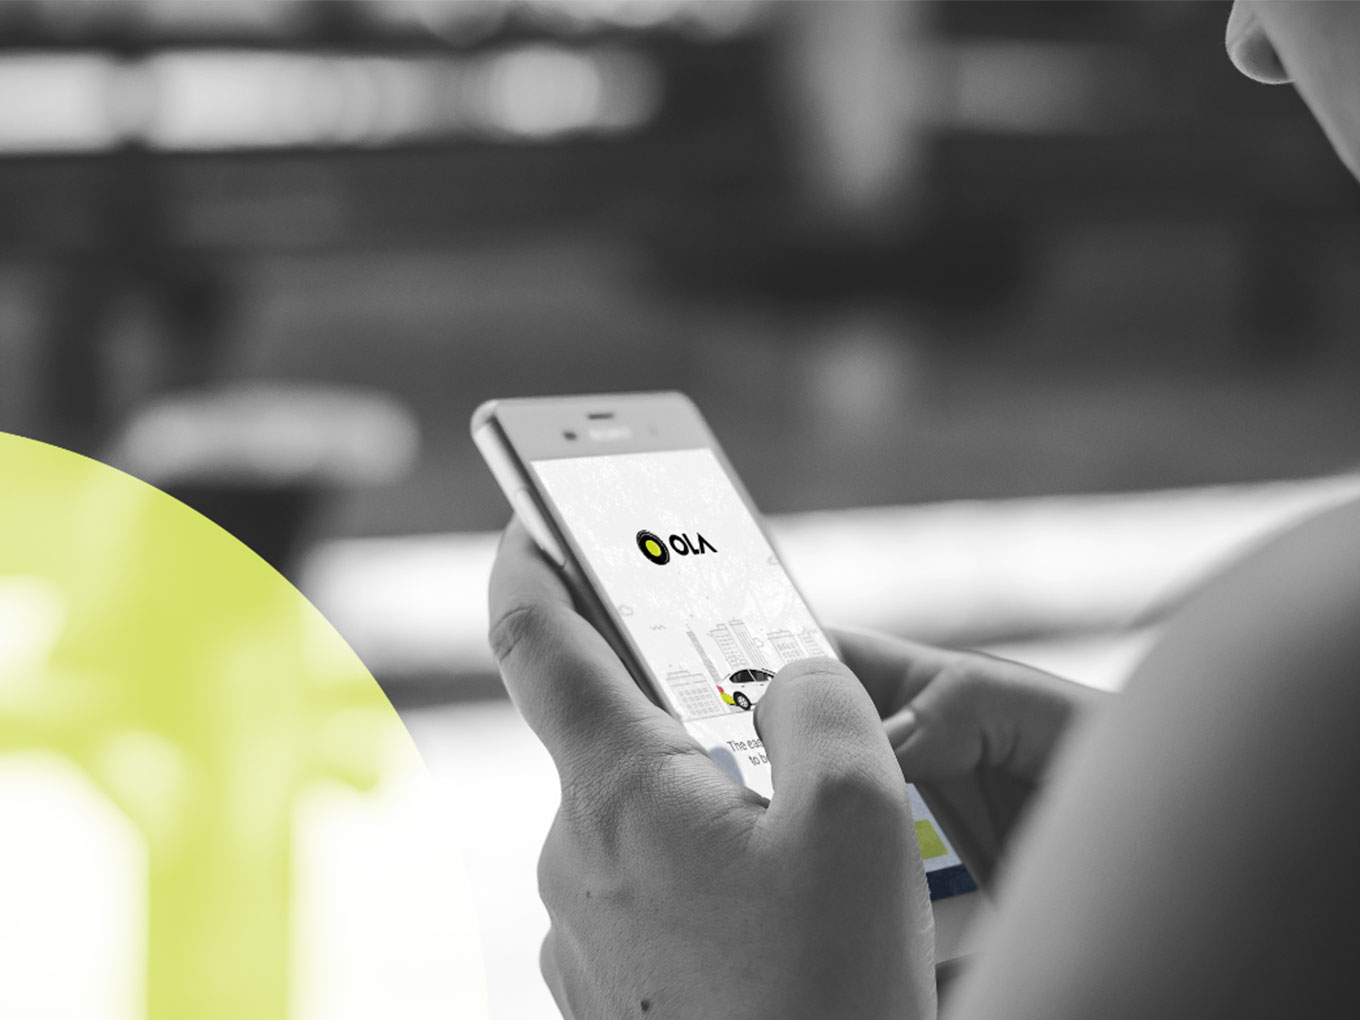 Ola to launch its cab services in United Kingdom in a month